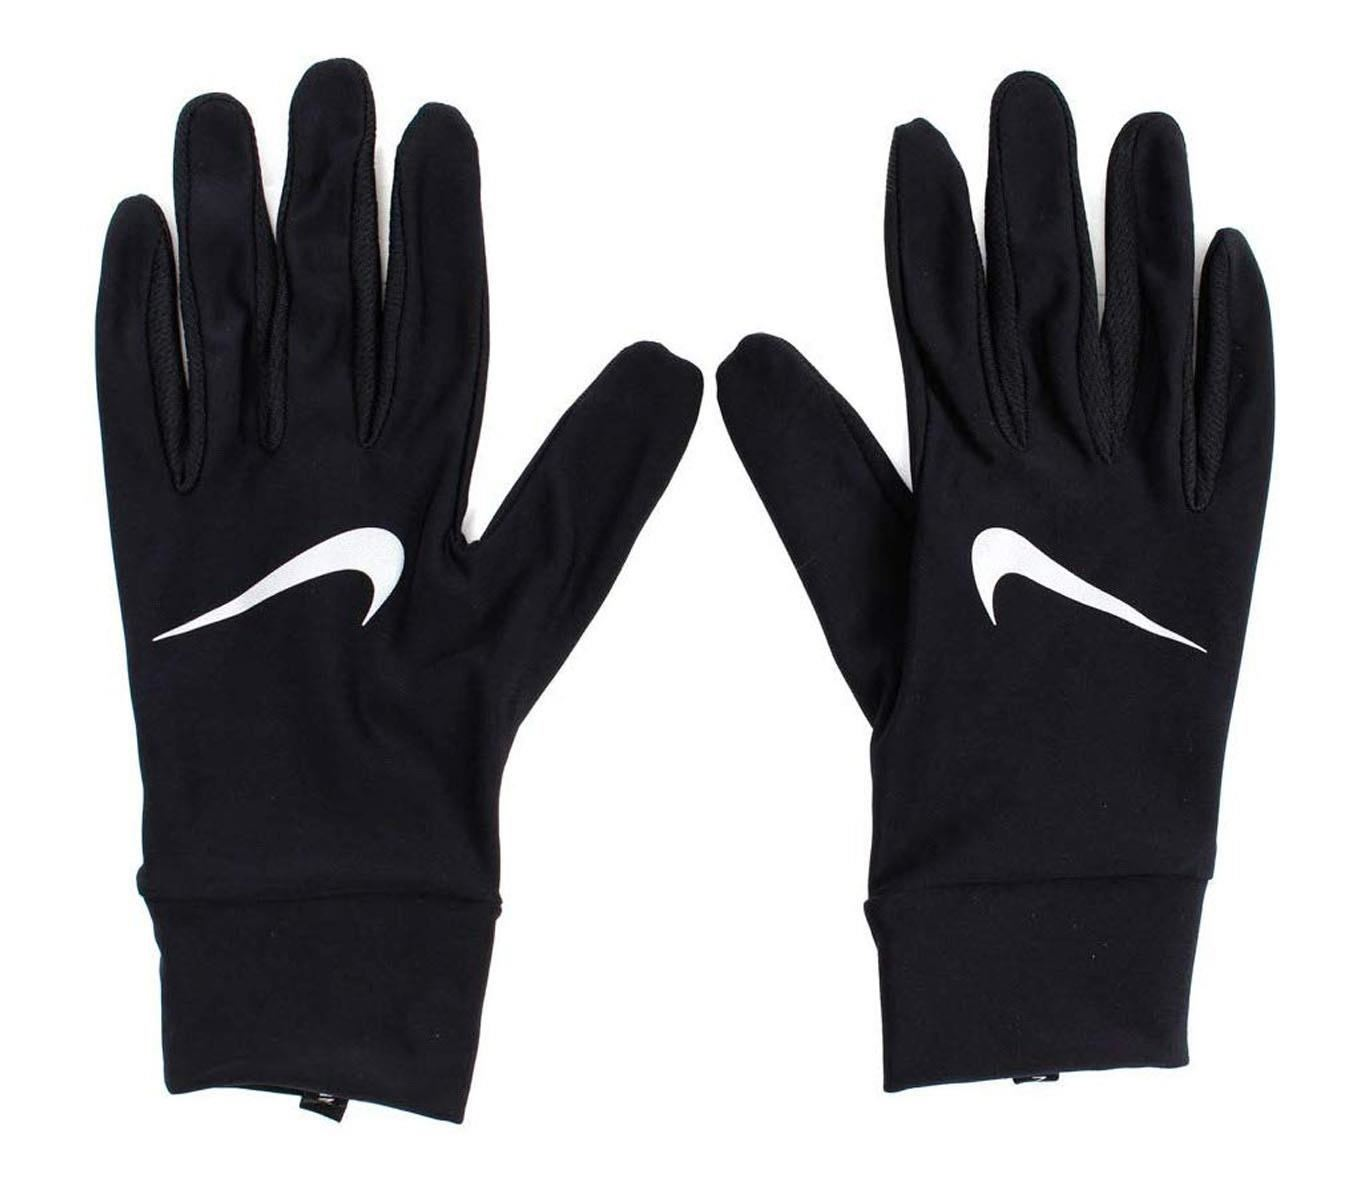 The best touch screen gloves to get you through the winter